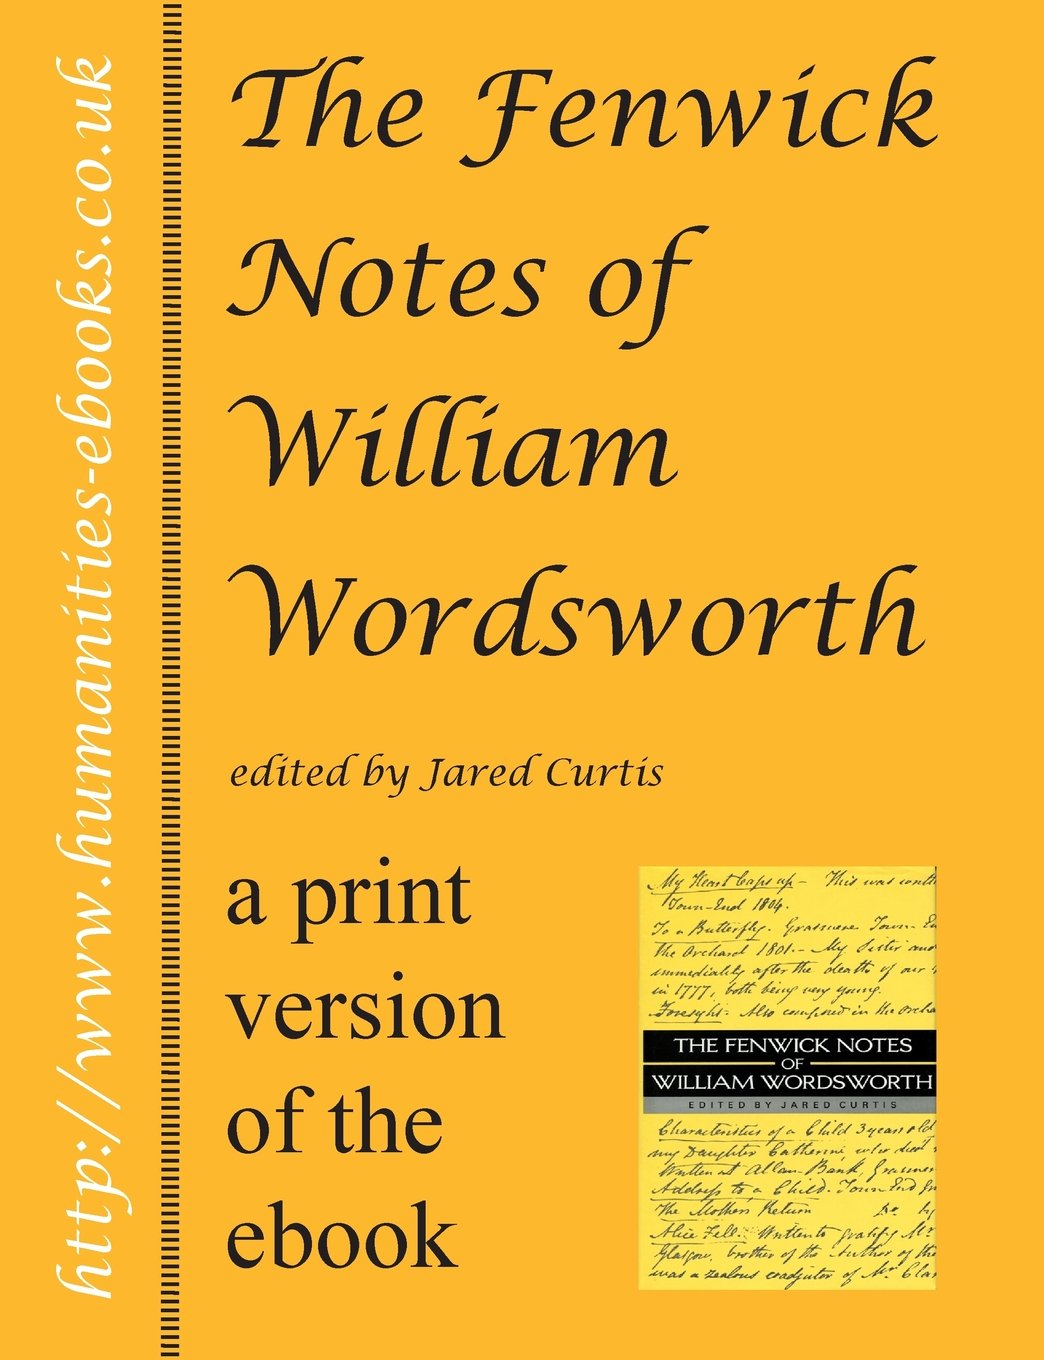 The Fenwick Notes Of William Wordsworth: Amazon: Jared Curtis:  9781847600752: Books